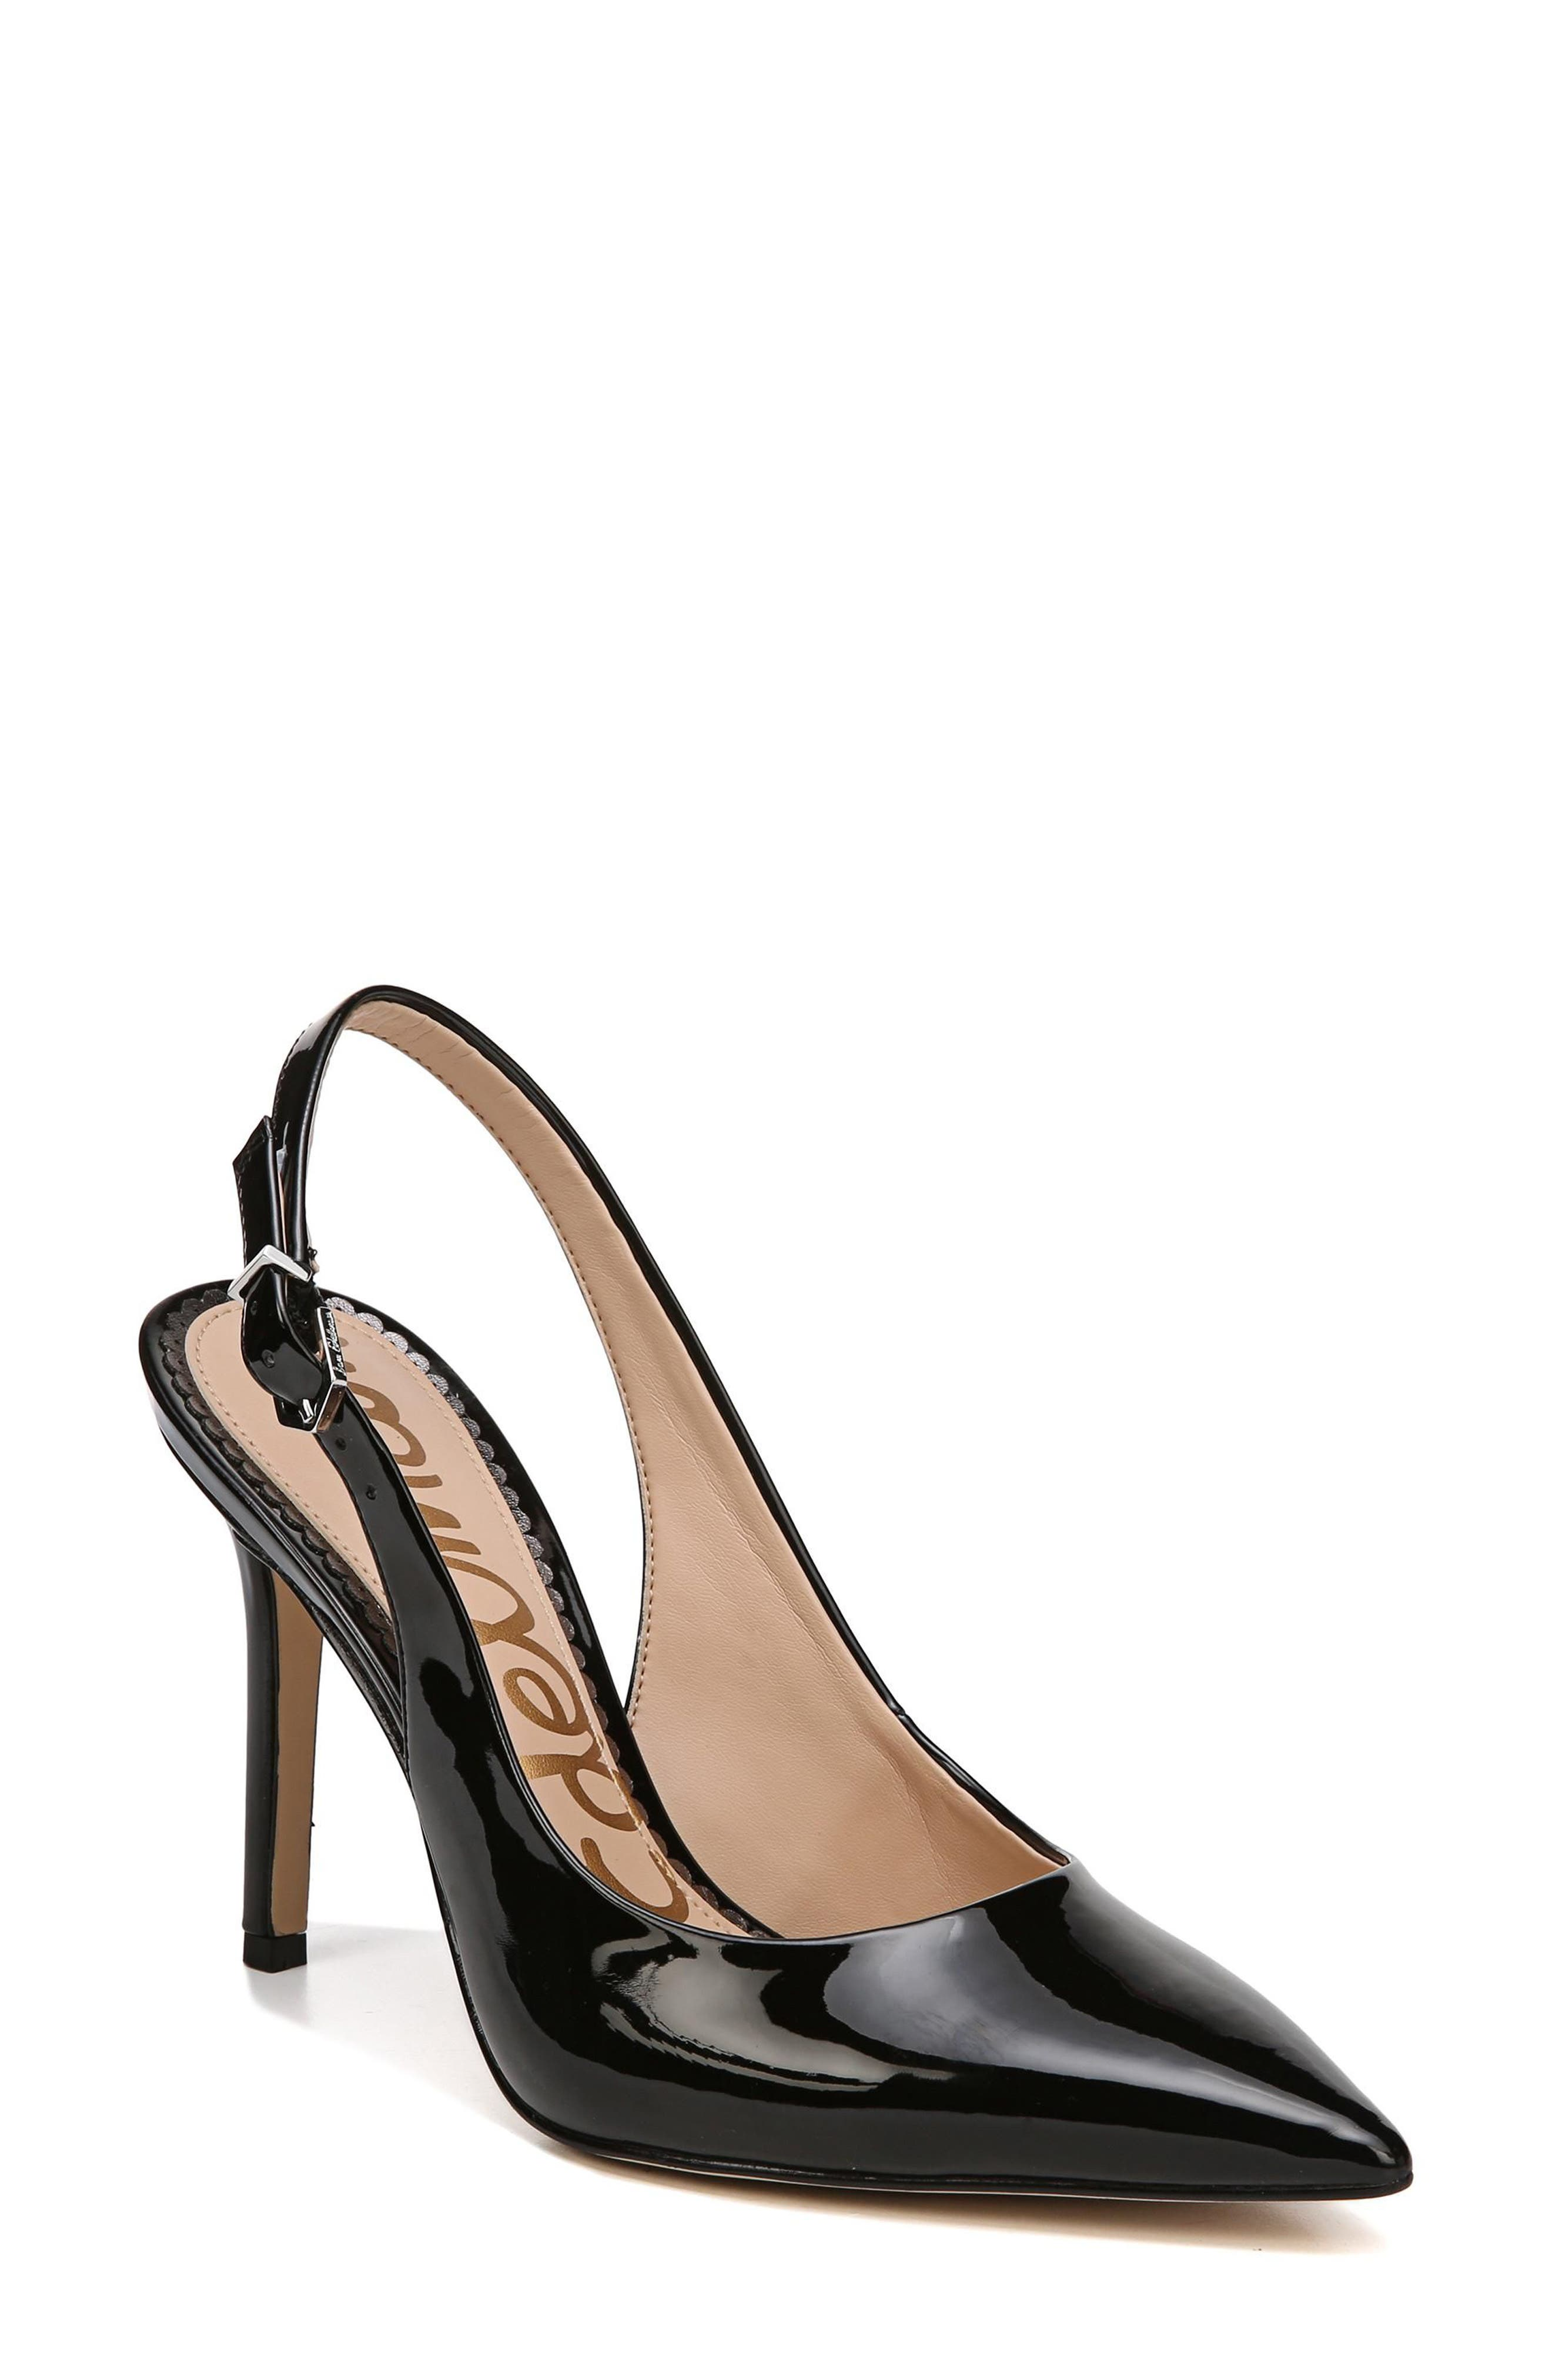 Hastings Slingback Pump,                         Main,                         color, Black Patent Leather